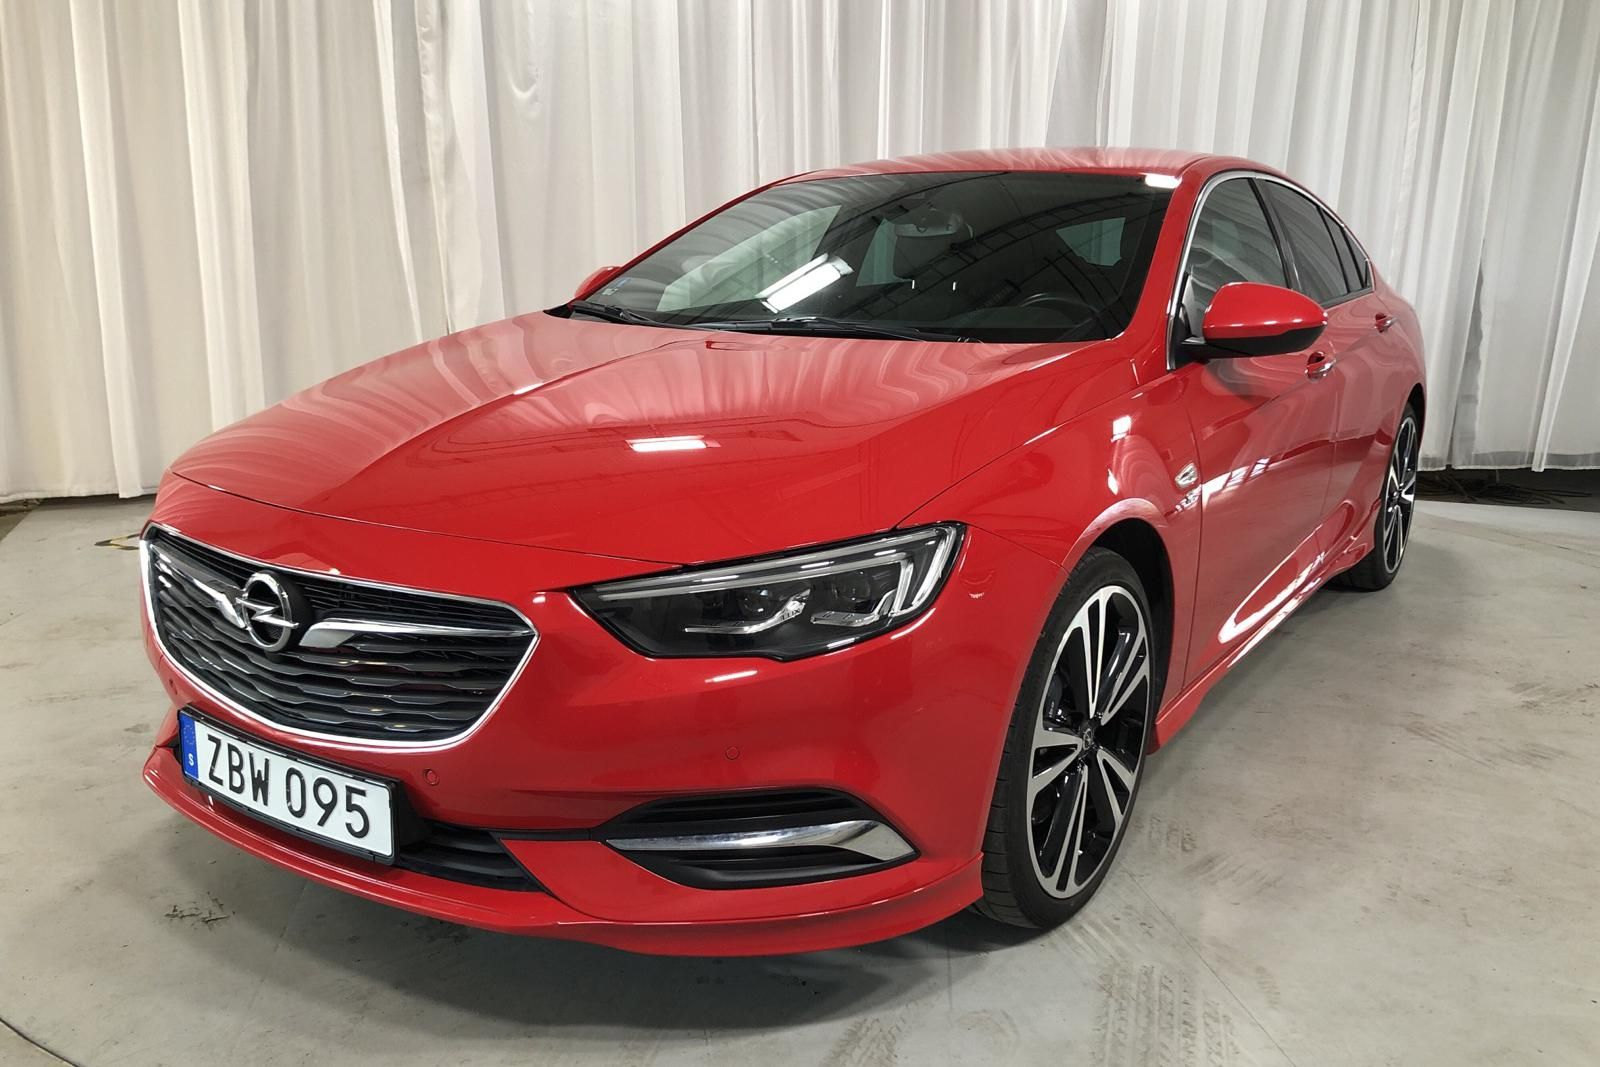 Opel Insignia 2.0 Turbo Grand Sport Allrad (260 PS)